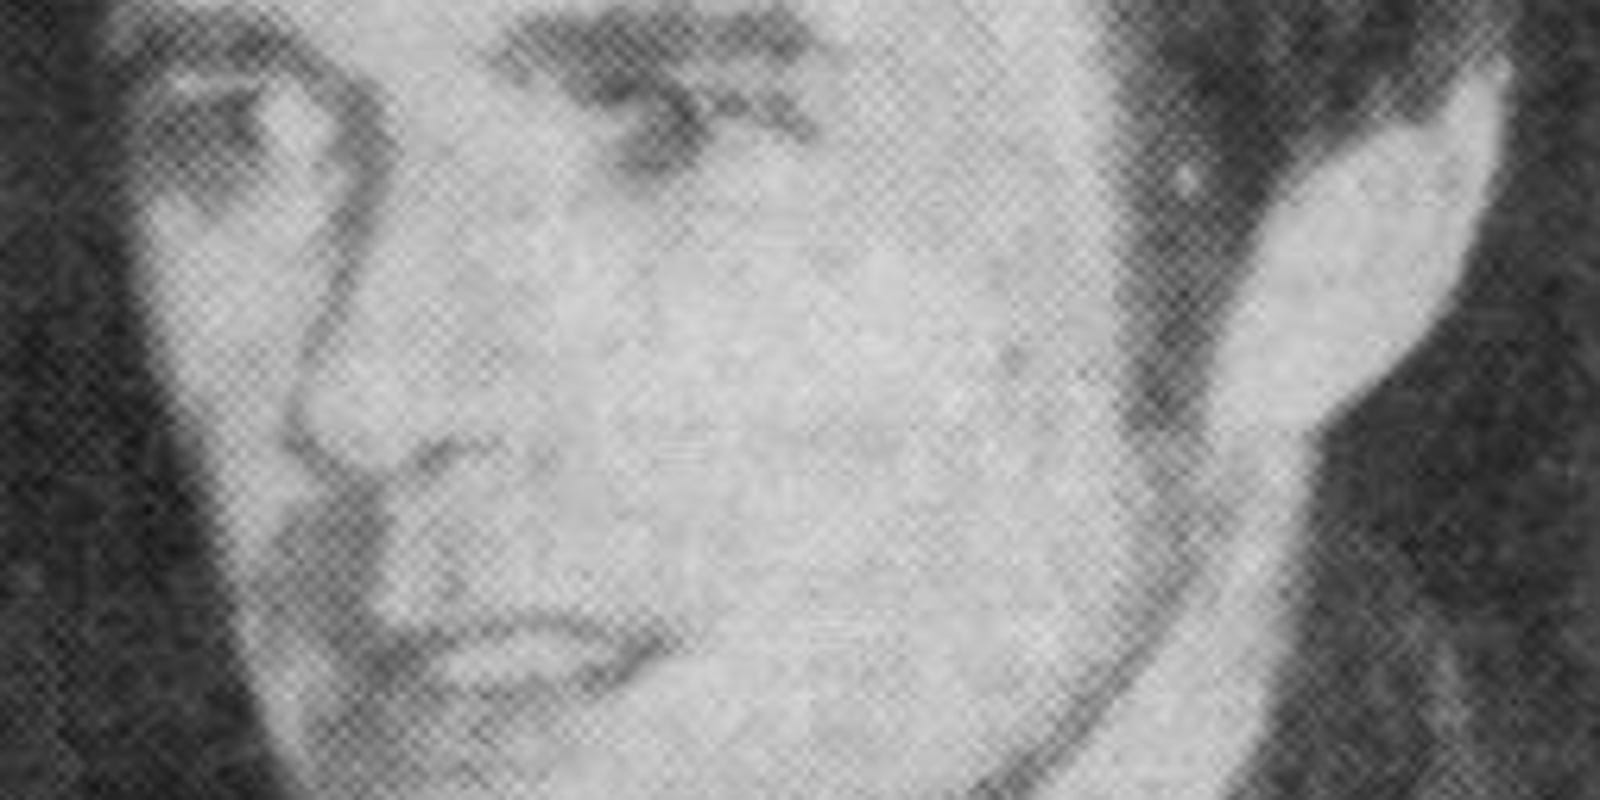 SLED, Solicitor's Office close investigation into missing Frank Looper cold case files